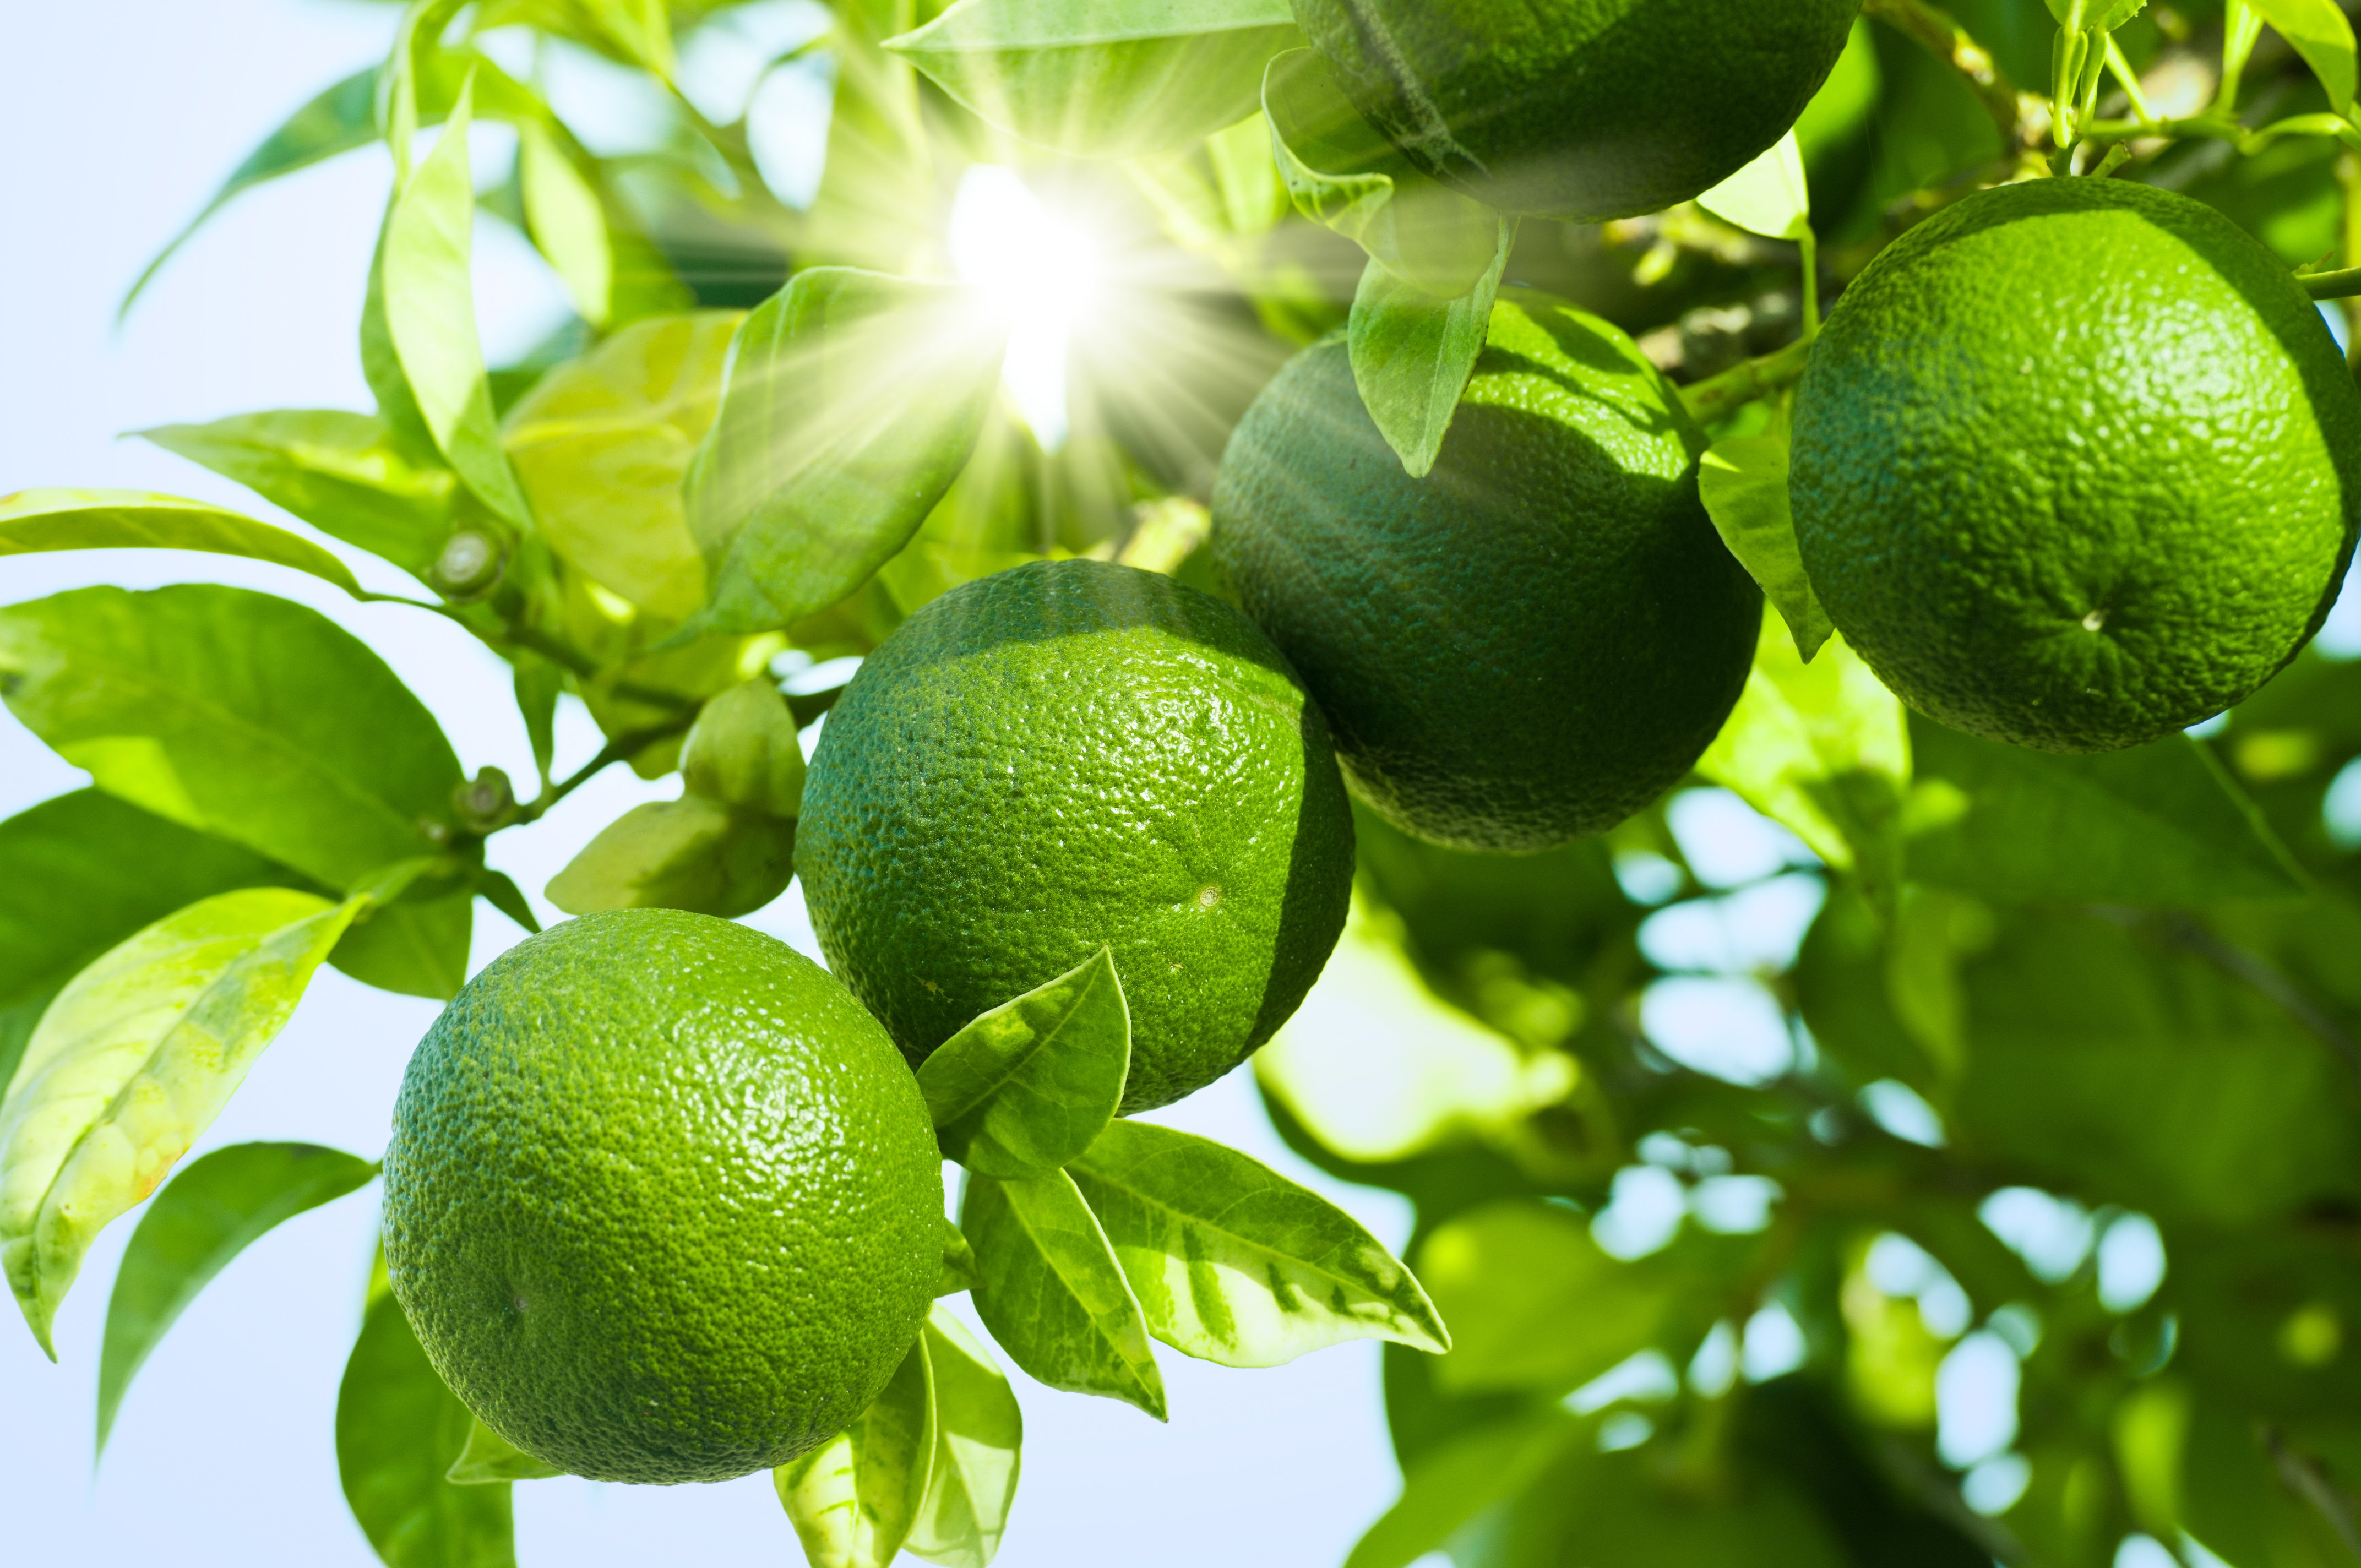 Limes in a tree